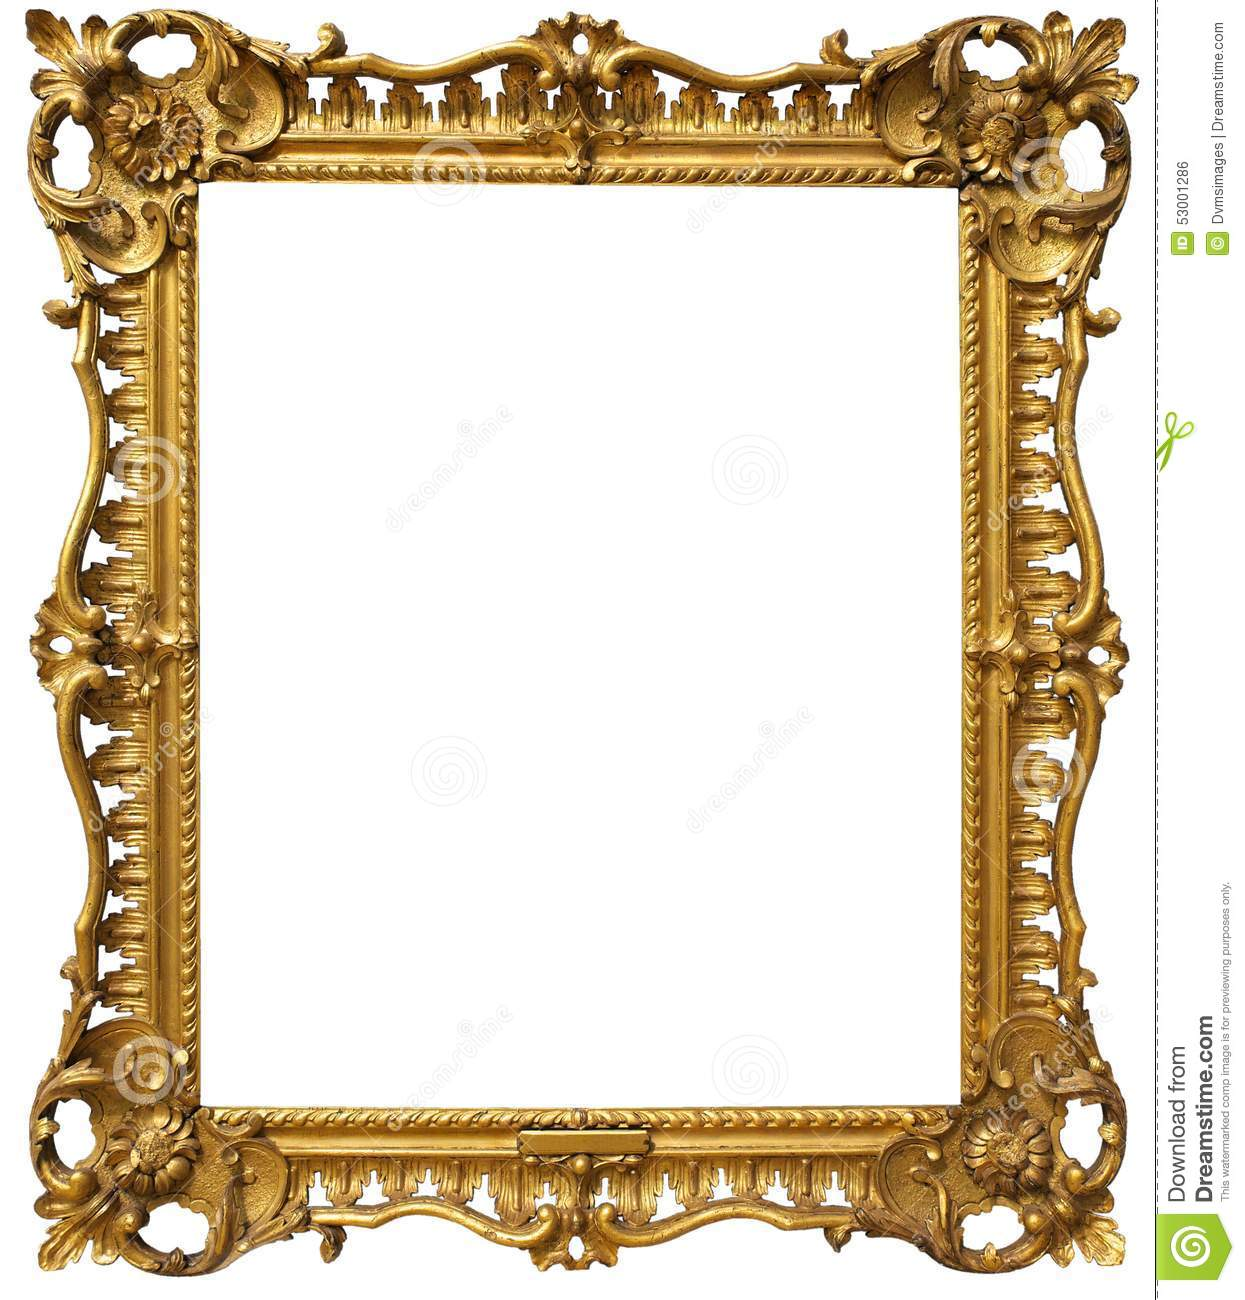 ornate baroque gold frame